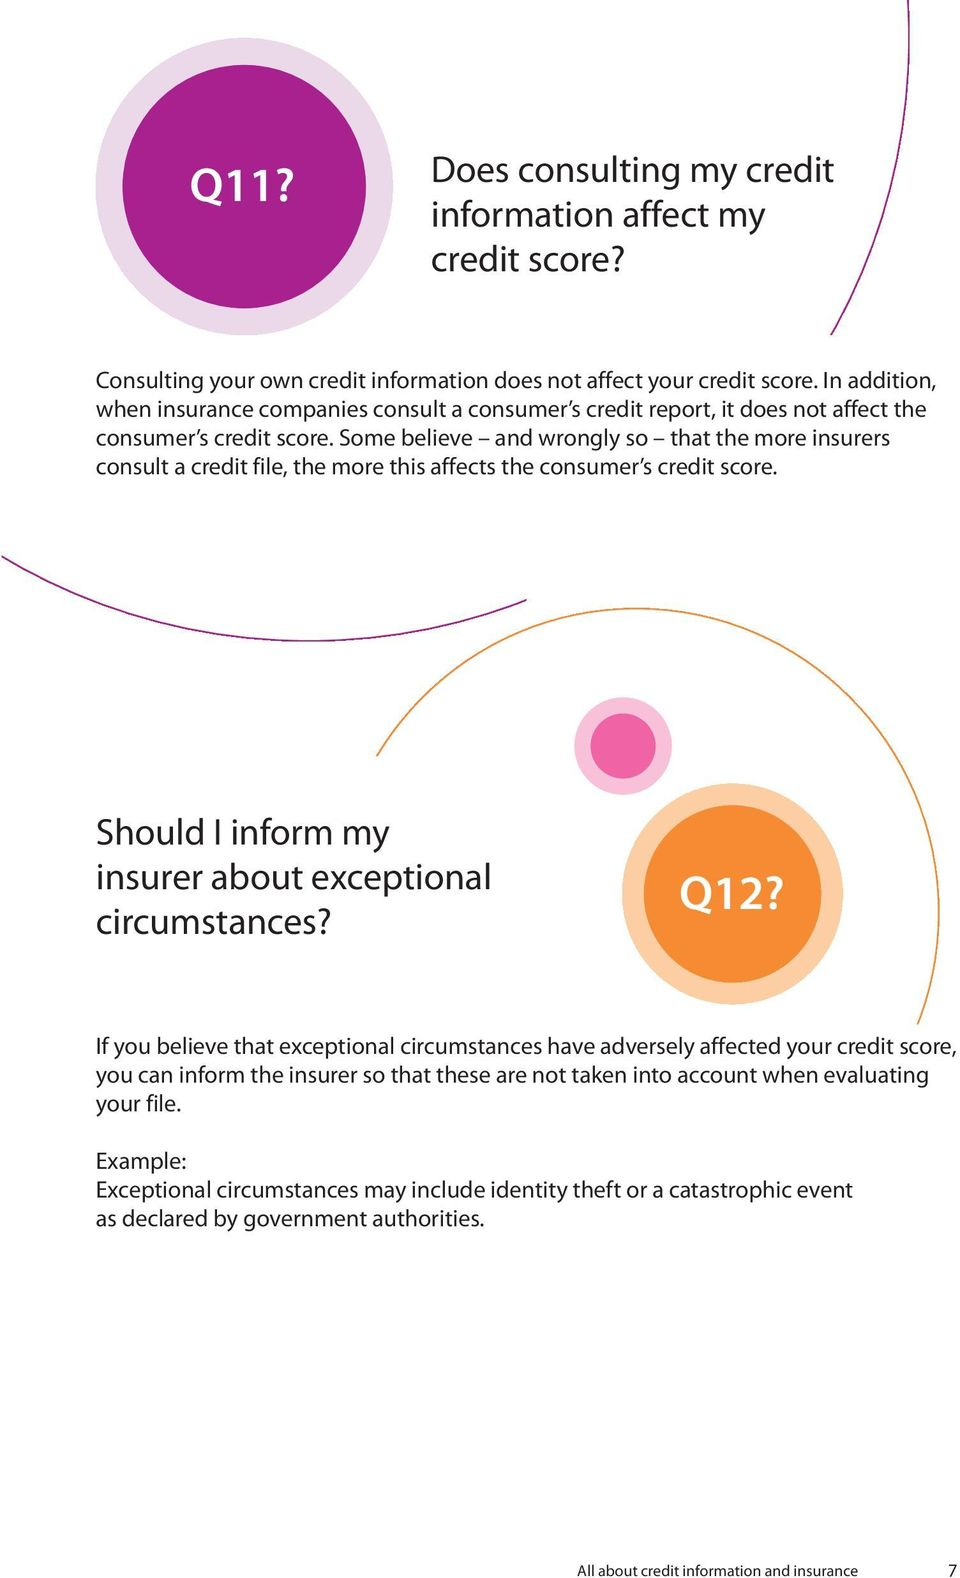 Some believe and wrongly so that the more insurers consult a credit file, the more this affects the consumer s credit score. Should I inform my insurer about exceptional circumstances? Q12?